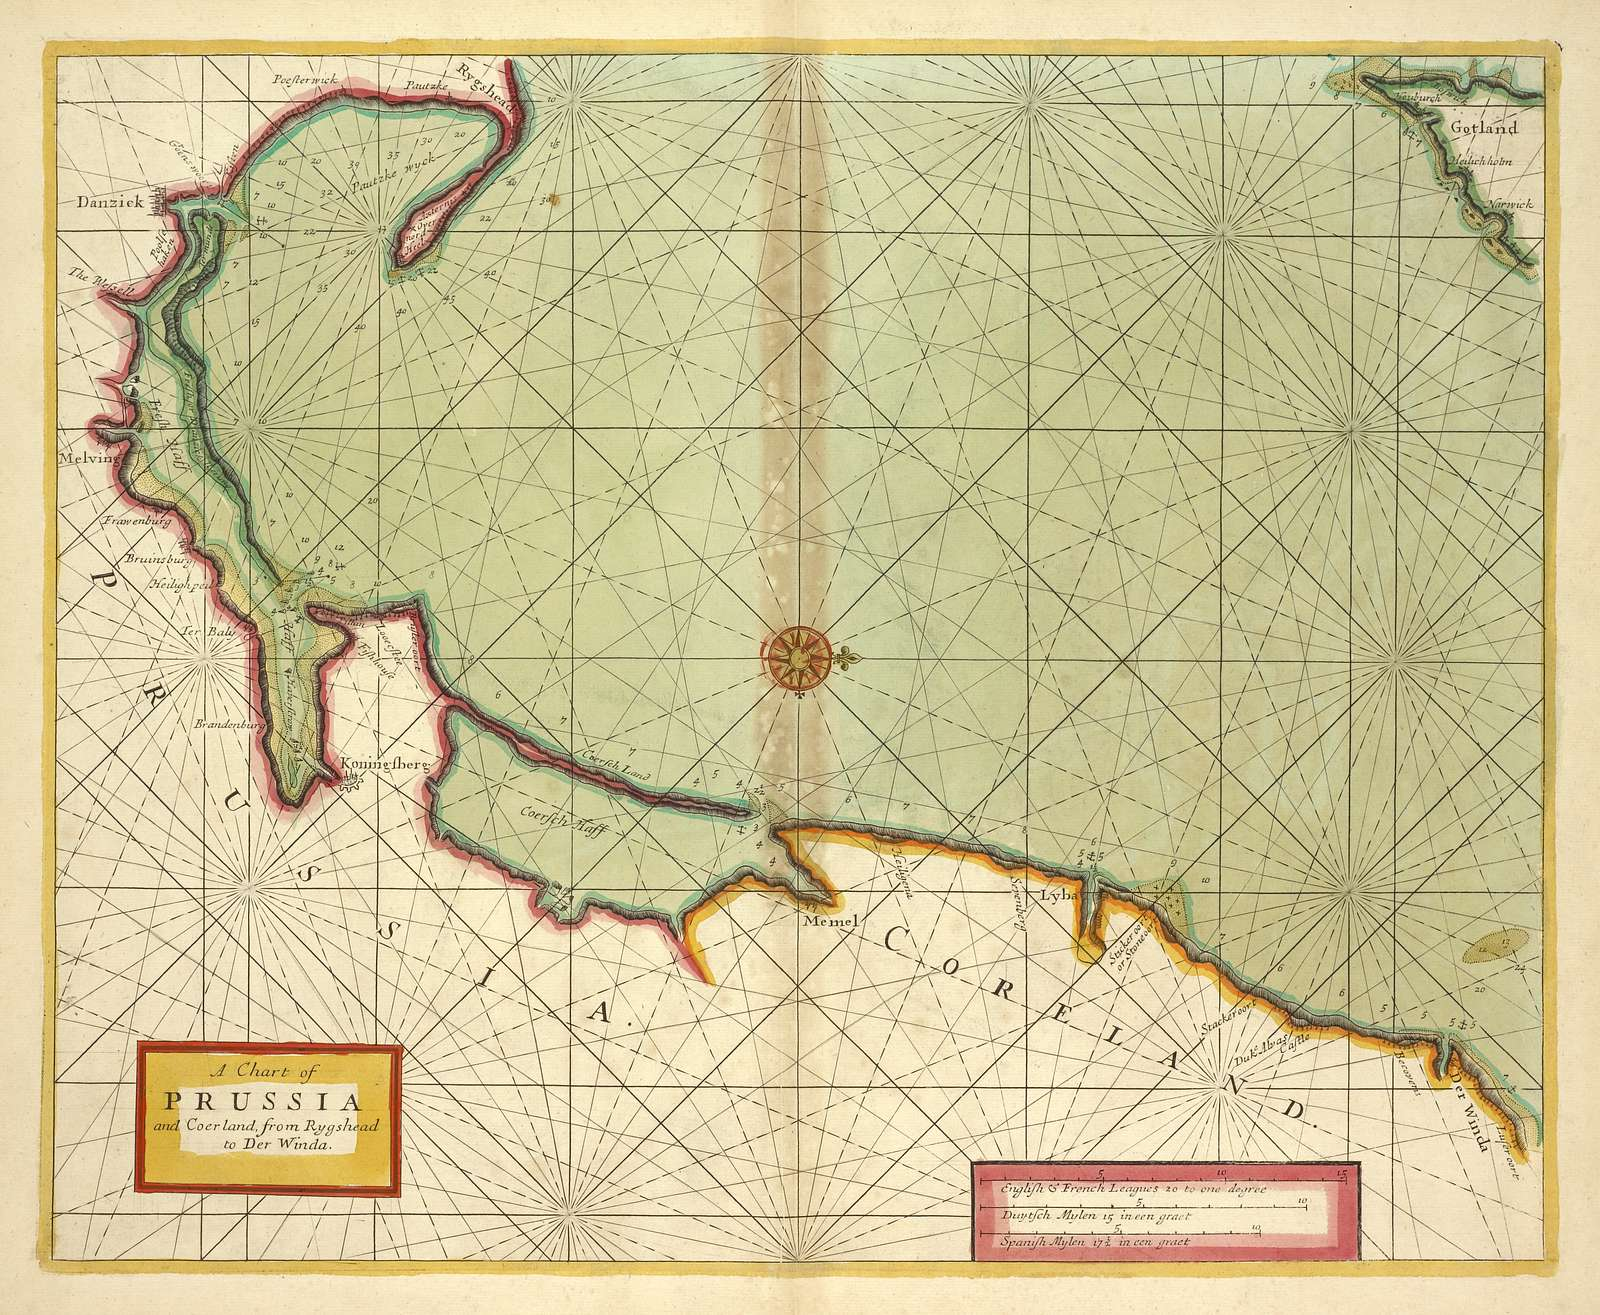 A chart of PRUSSIA and Coerland from Rygshead to Der Winda